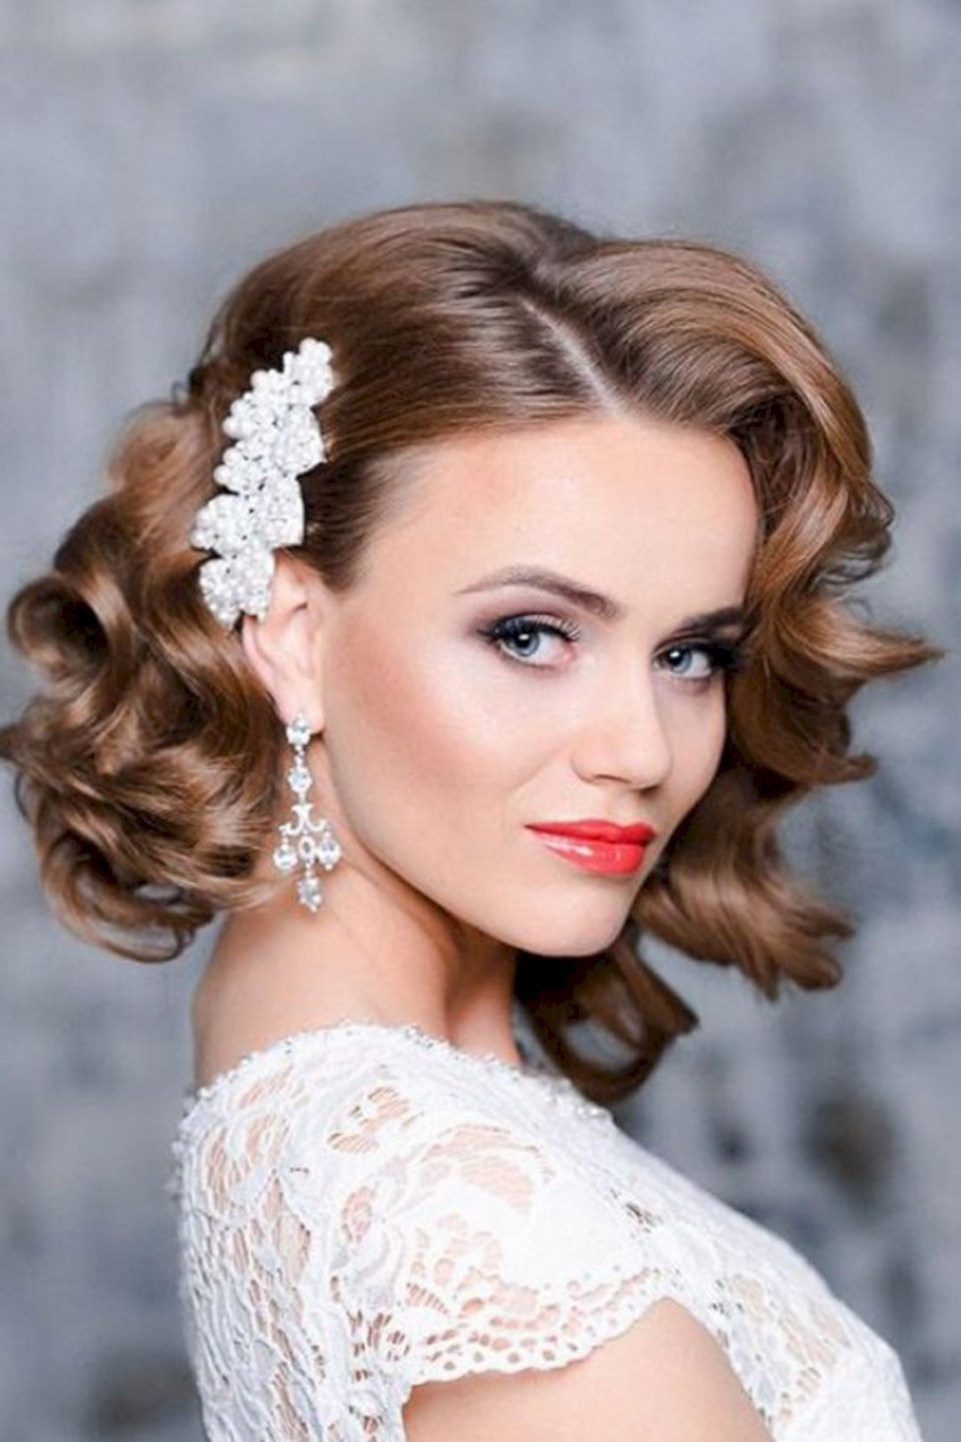 Marvelous Bridesmaid Hairstyle Short Hair U Oosile Of For Styles And Throughout Most Popular Wedding Hairstyles For Short Hair For Bridesmaids (Gallery 6 of 15)